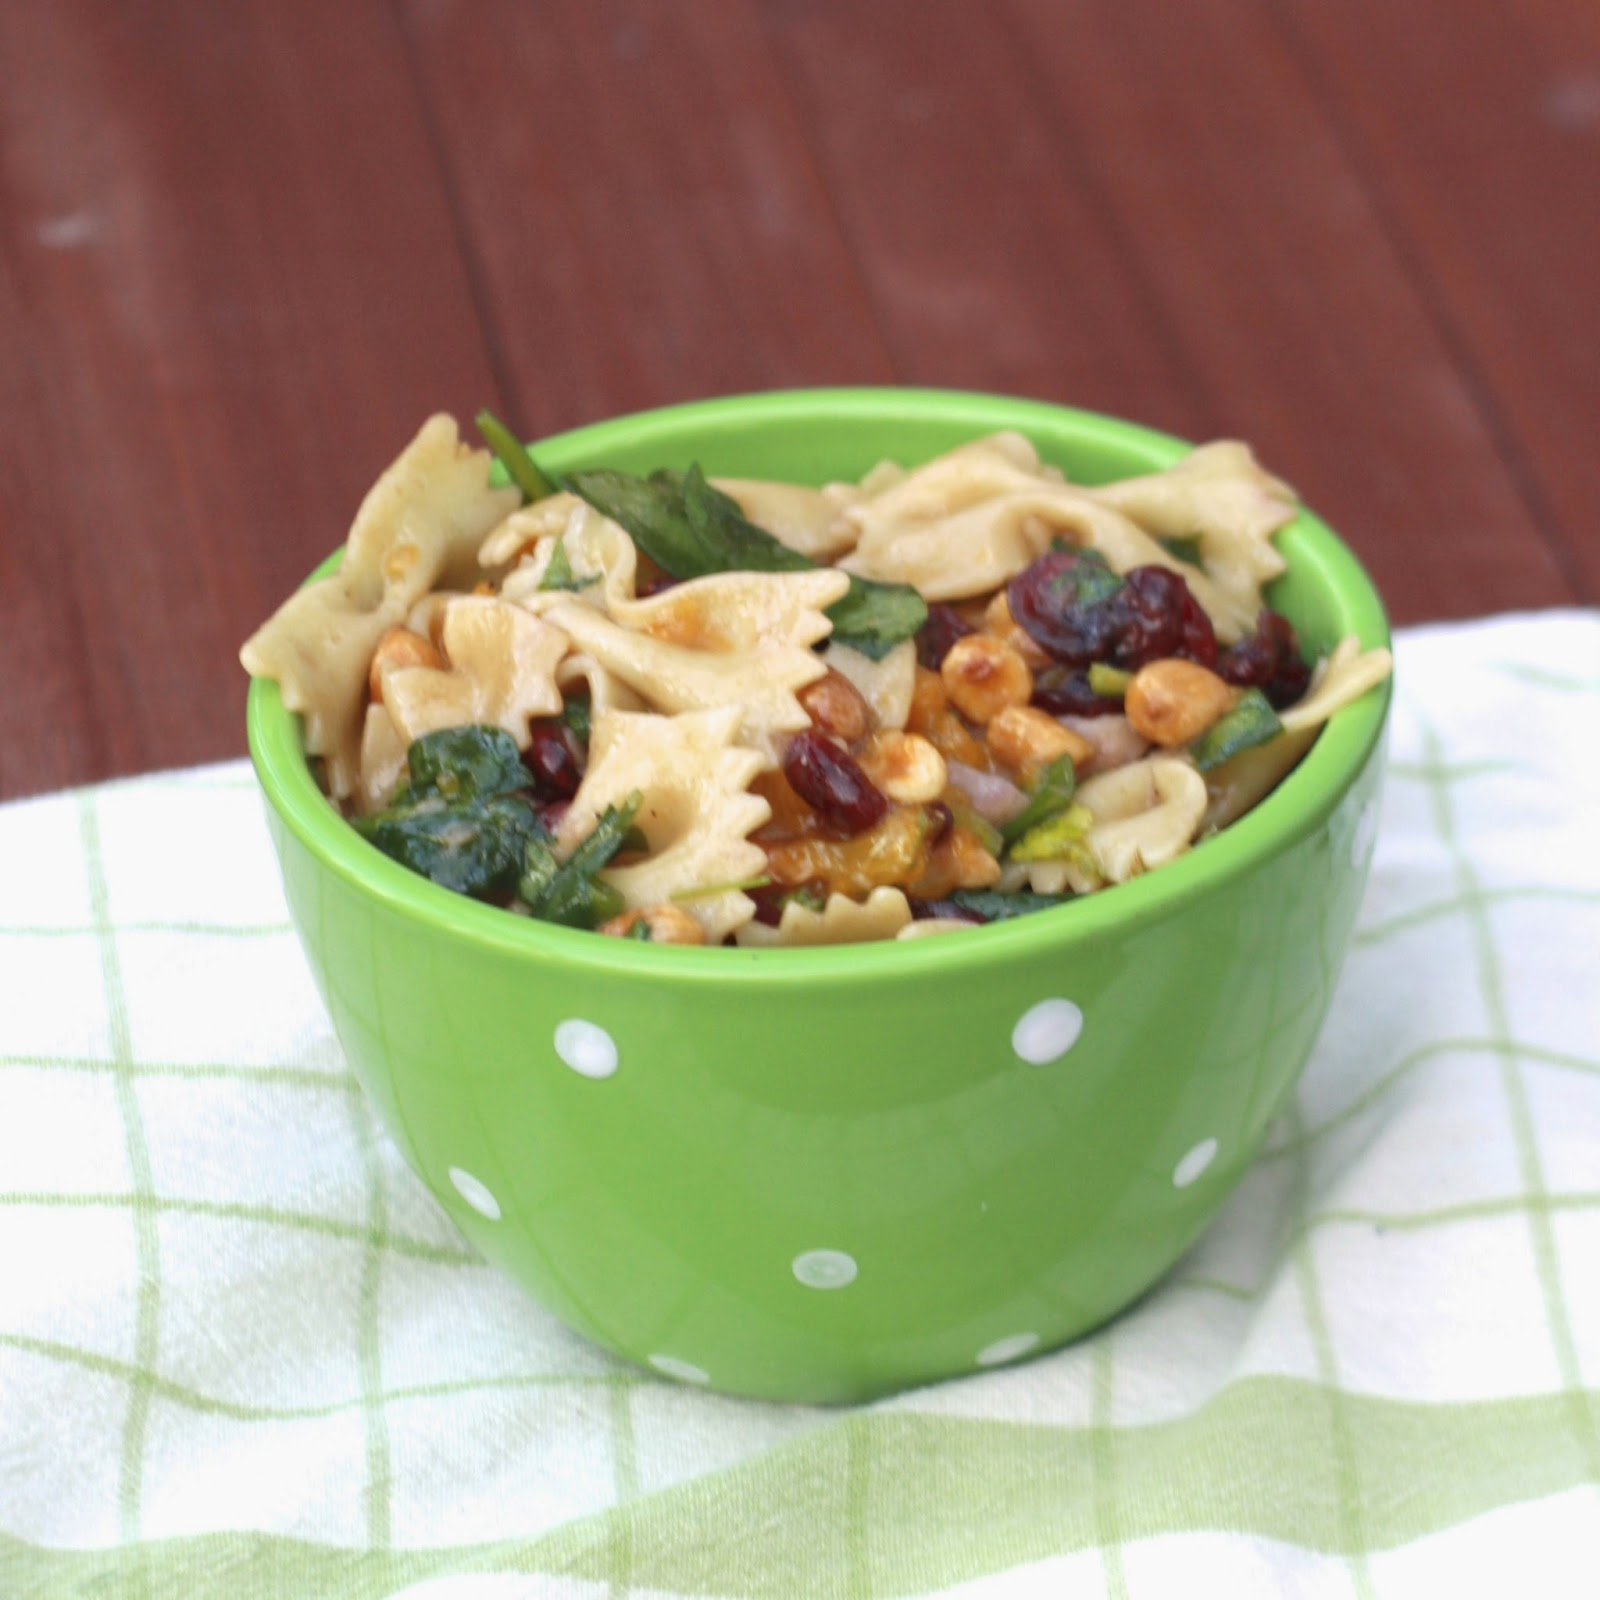 Spinach Teriyaki Pasta Salad | The Sweets Life